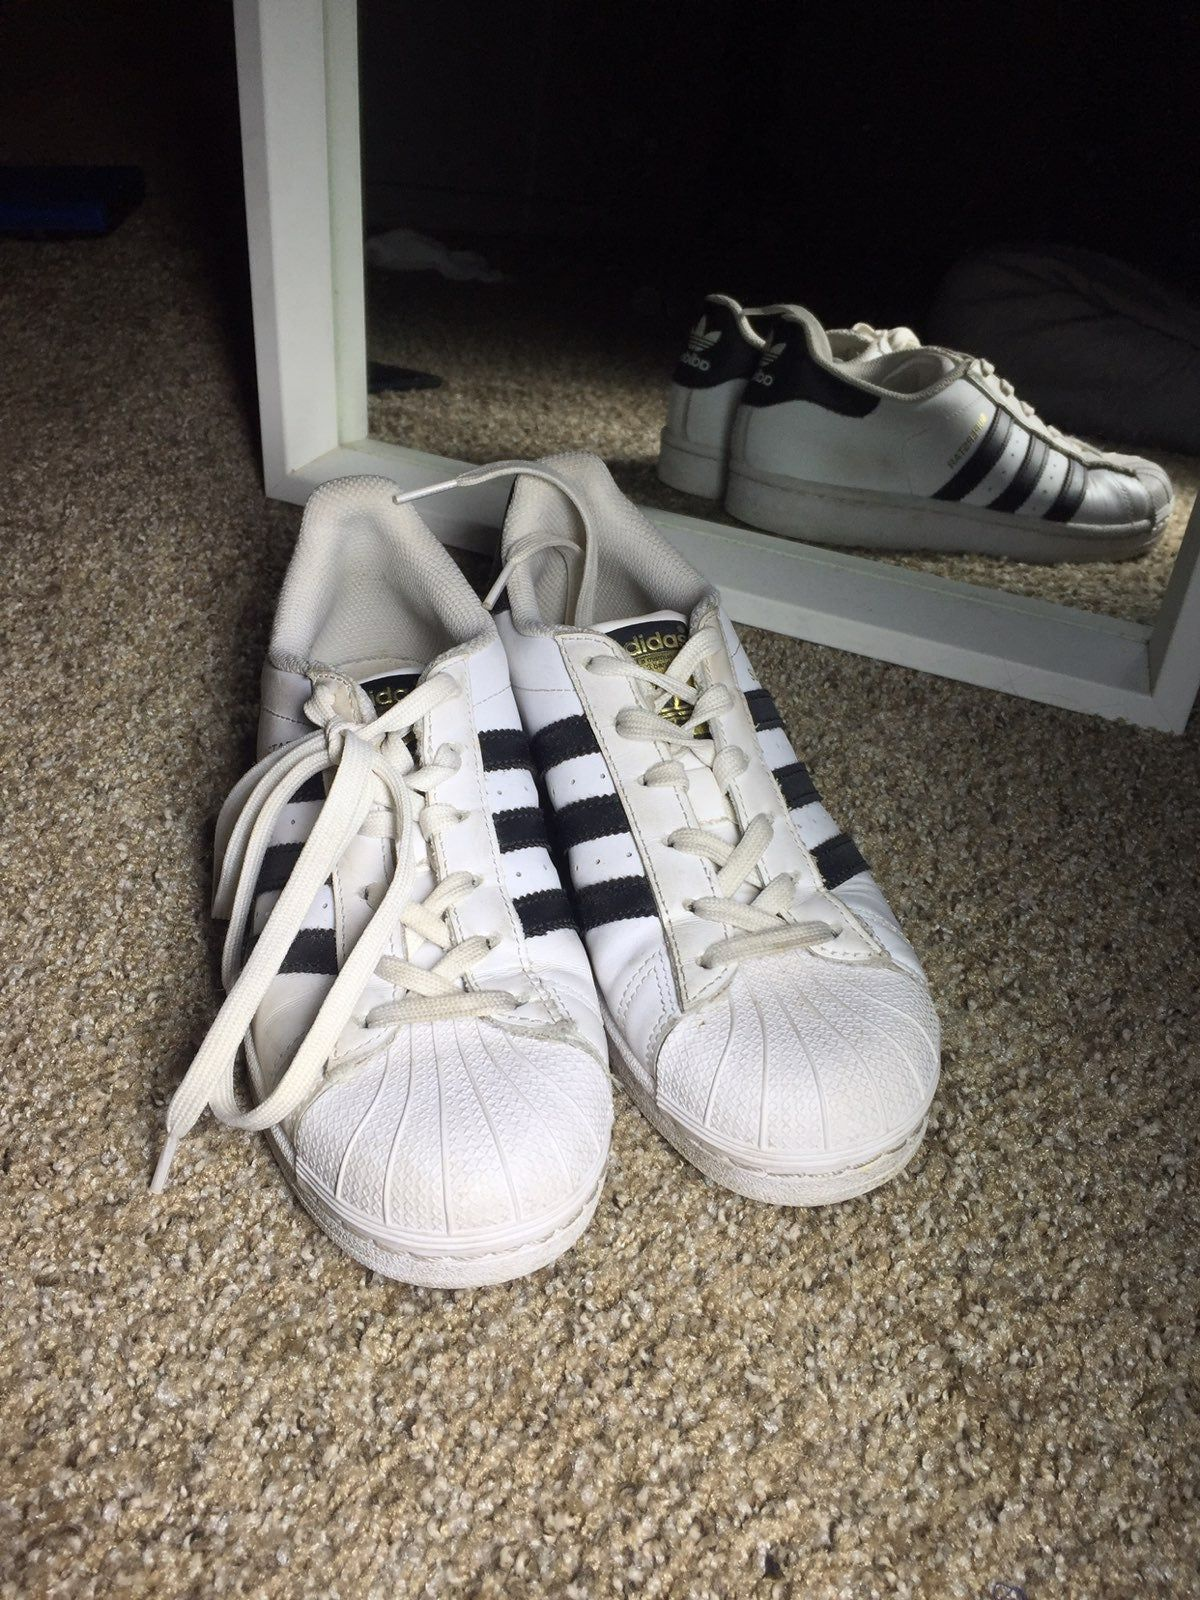 Used adidas shoes, still in good